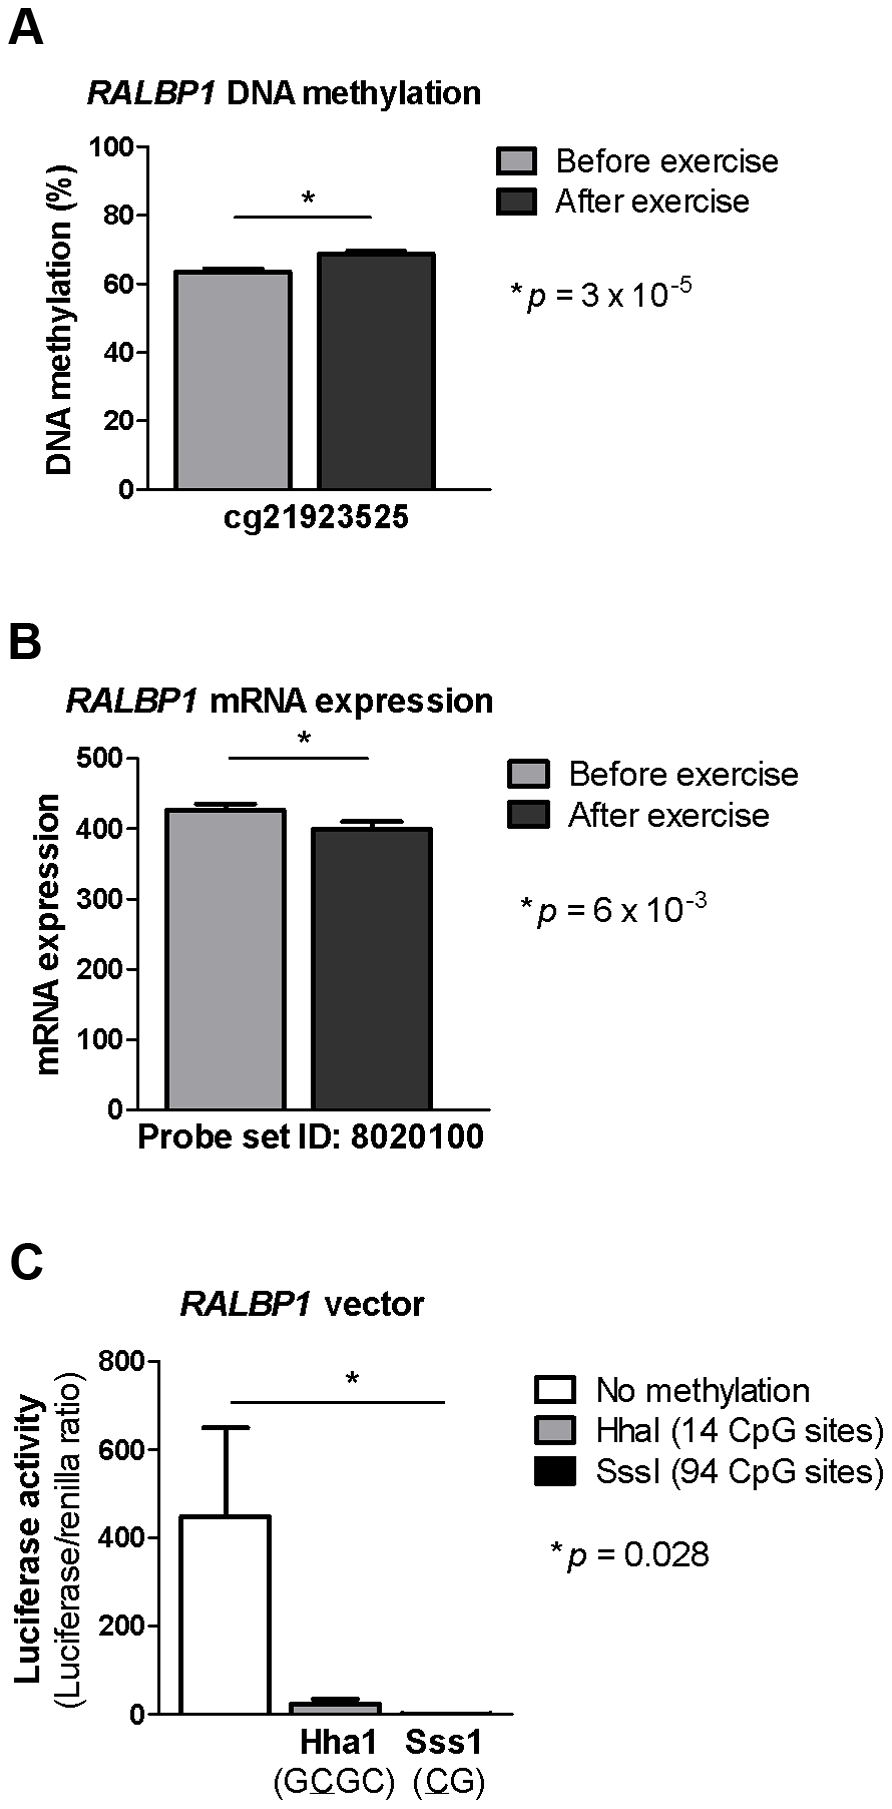 DNA methylation of RALBP1 is associated with a decrease in gene expression.